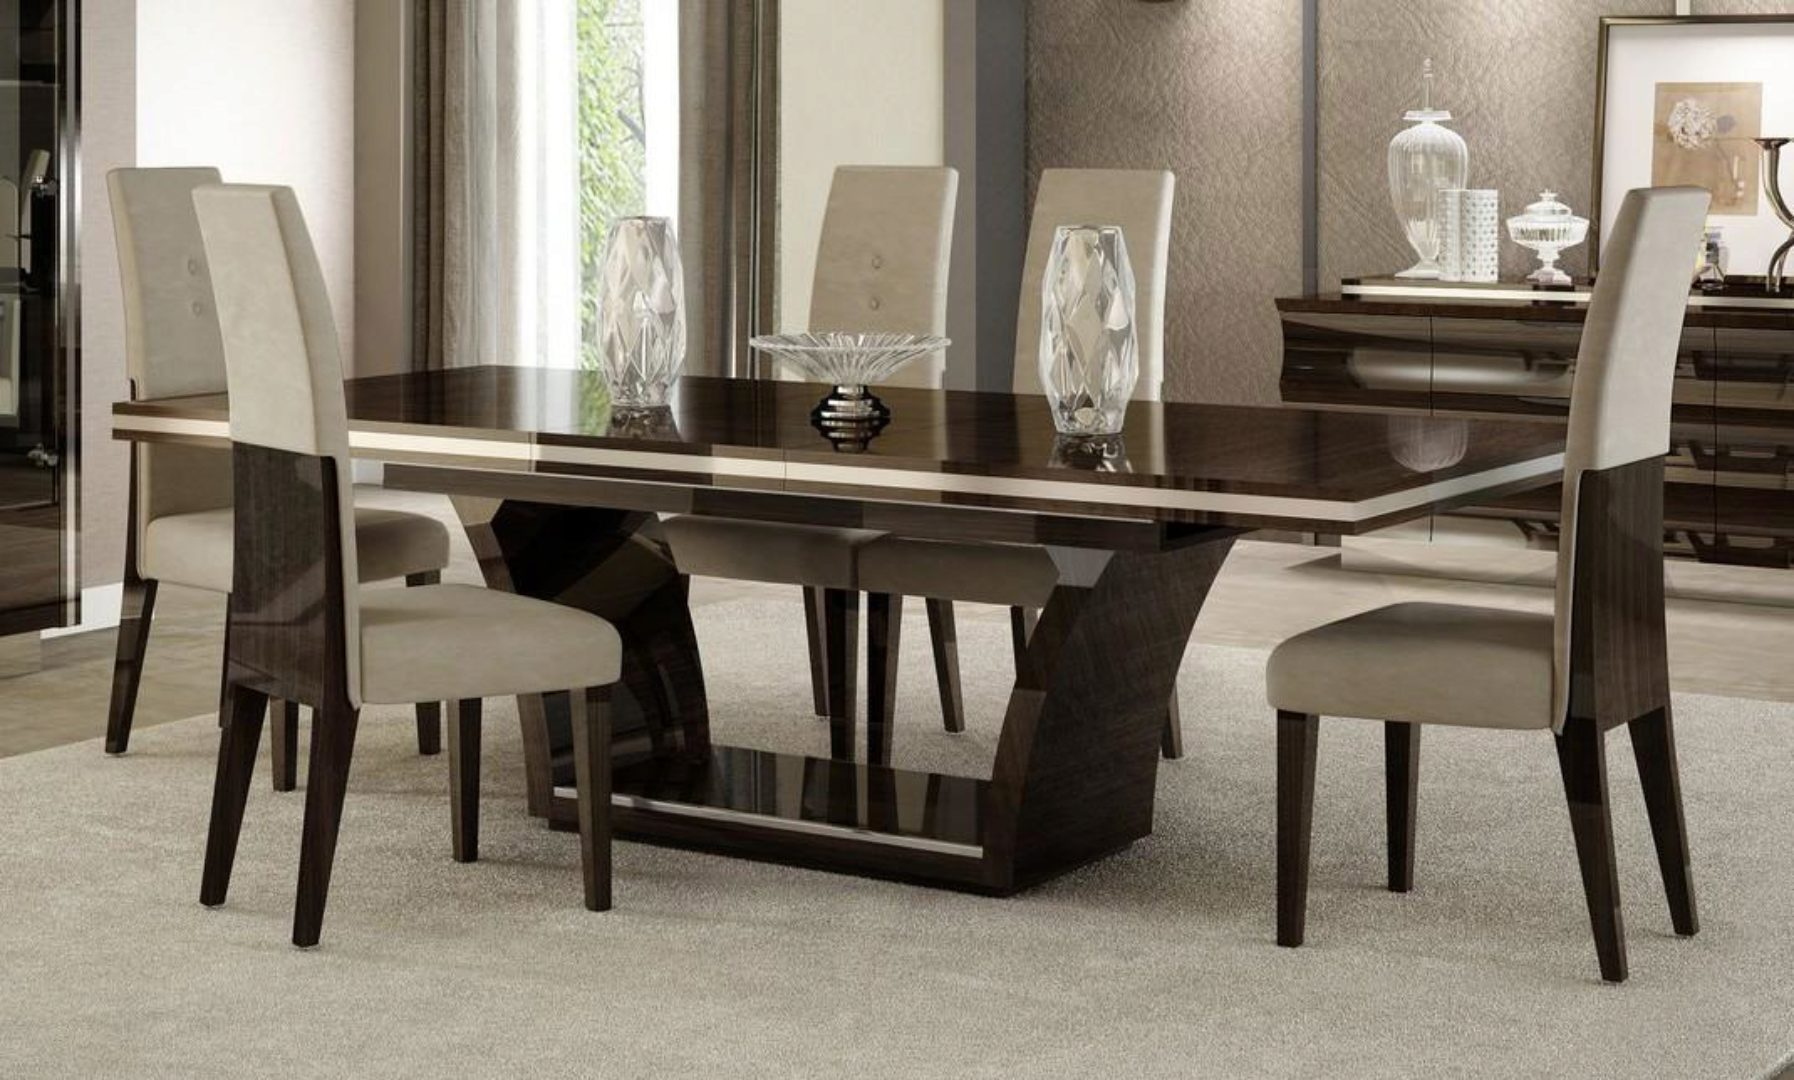 Contemporary Wenge Lacquer Finish Dining Table Set 7pcs Soflex Sylvester Sylvester Dining Set 7